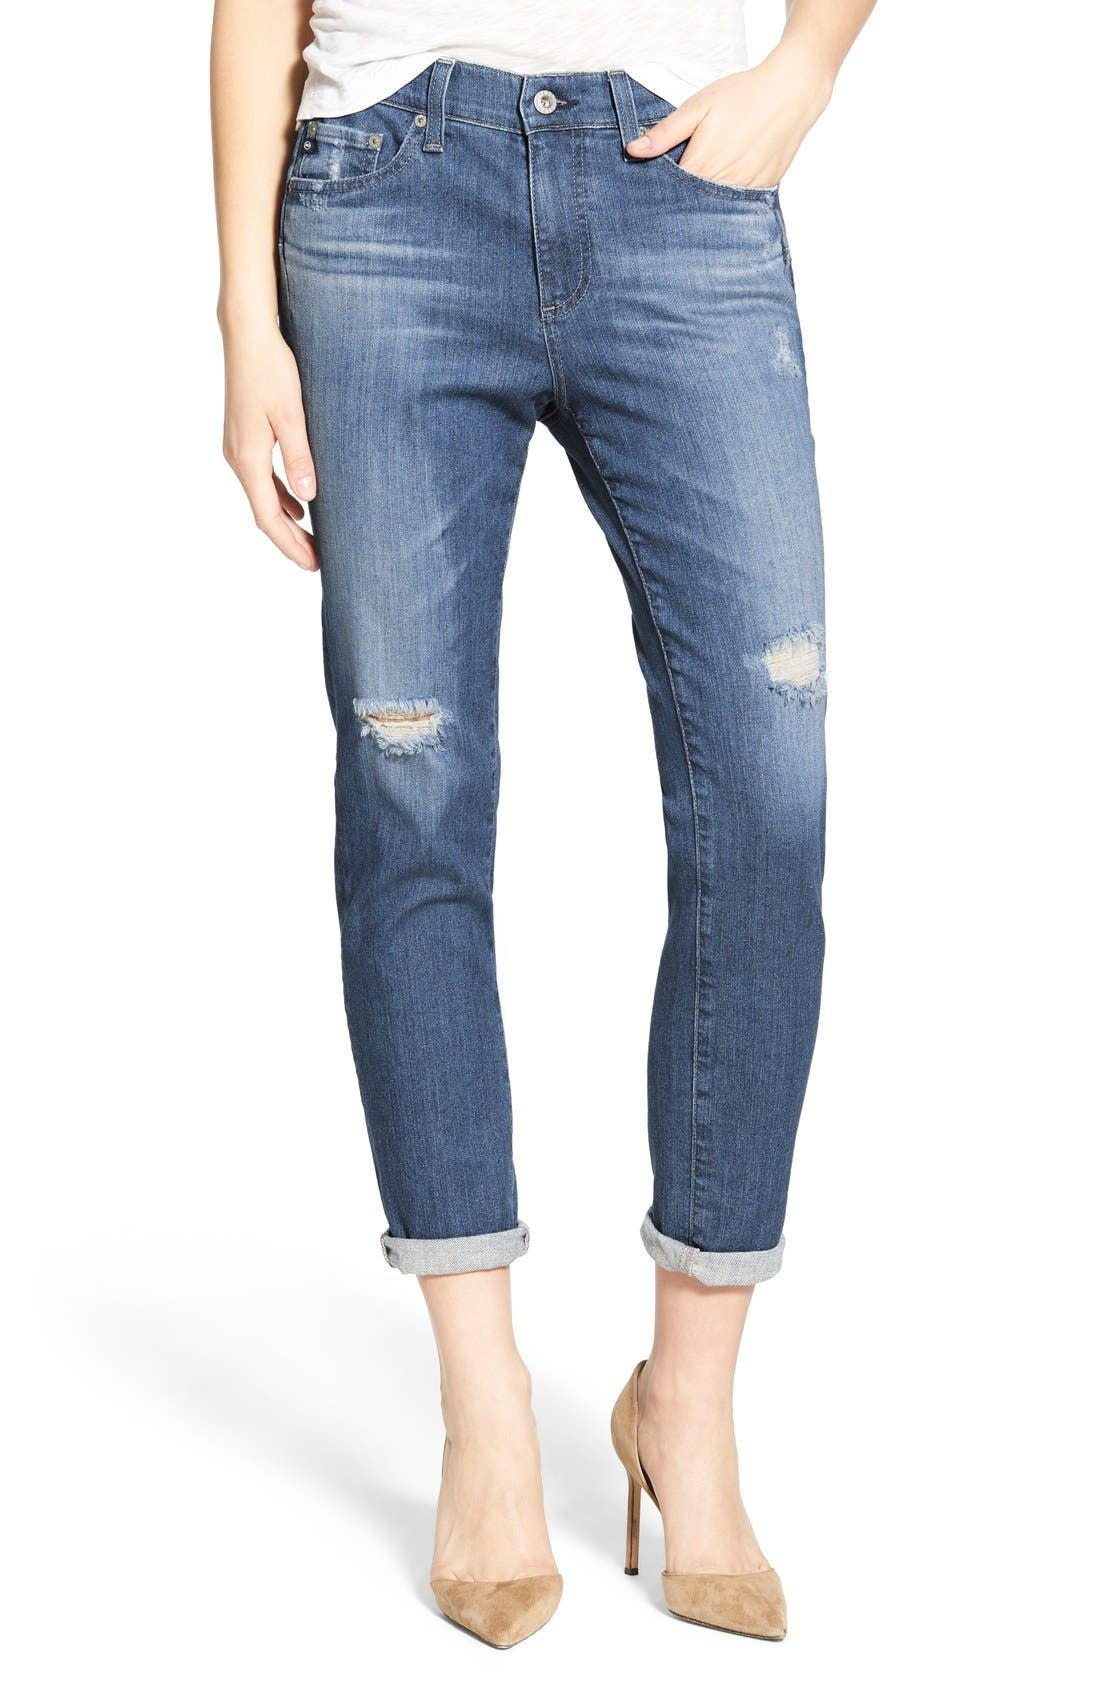 Alternate Image 1 Selected - AG 'The Beau' High Rise Slouchy Skinny Jeans (Dunes Destroyed)